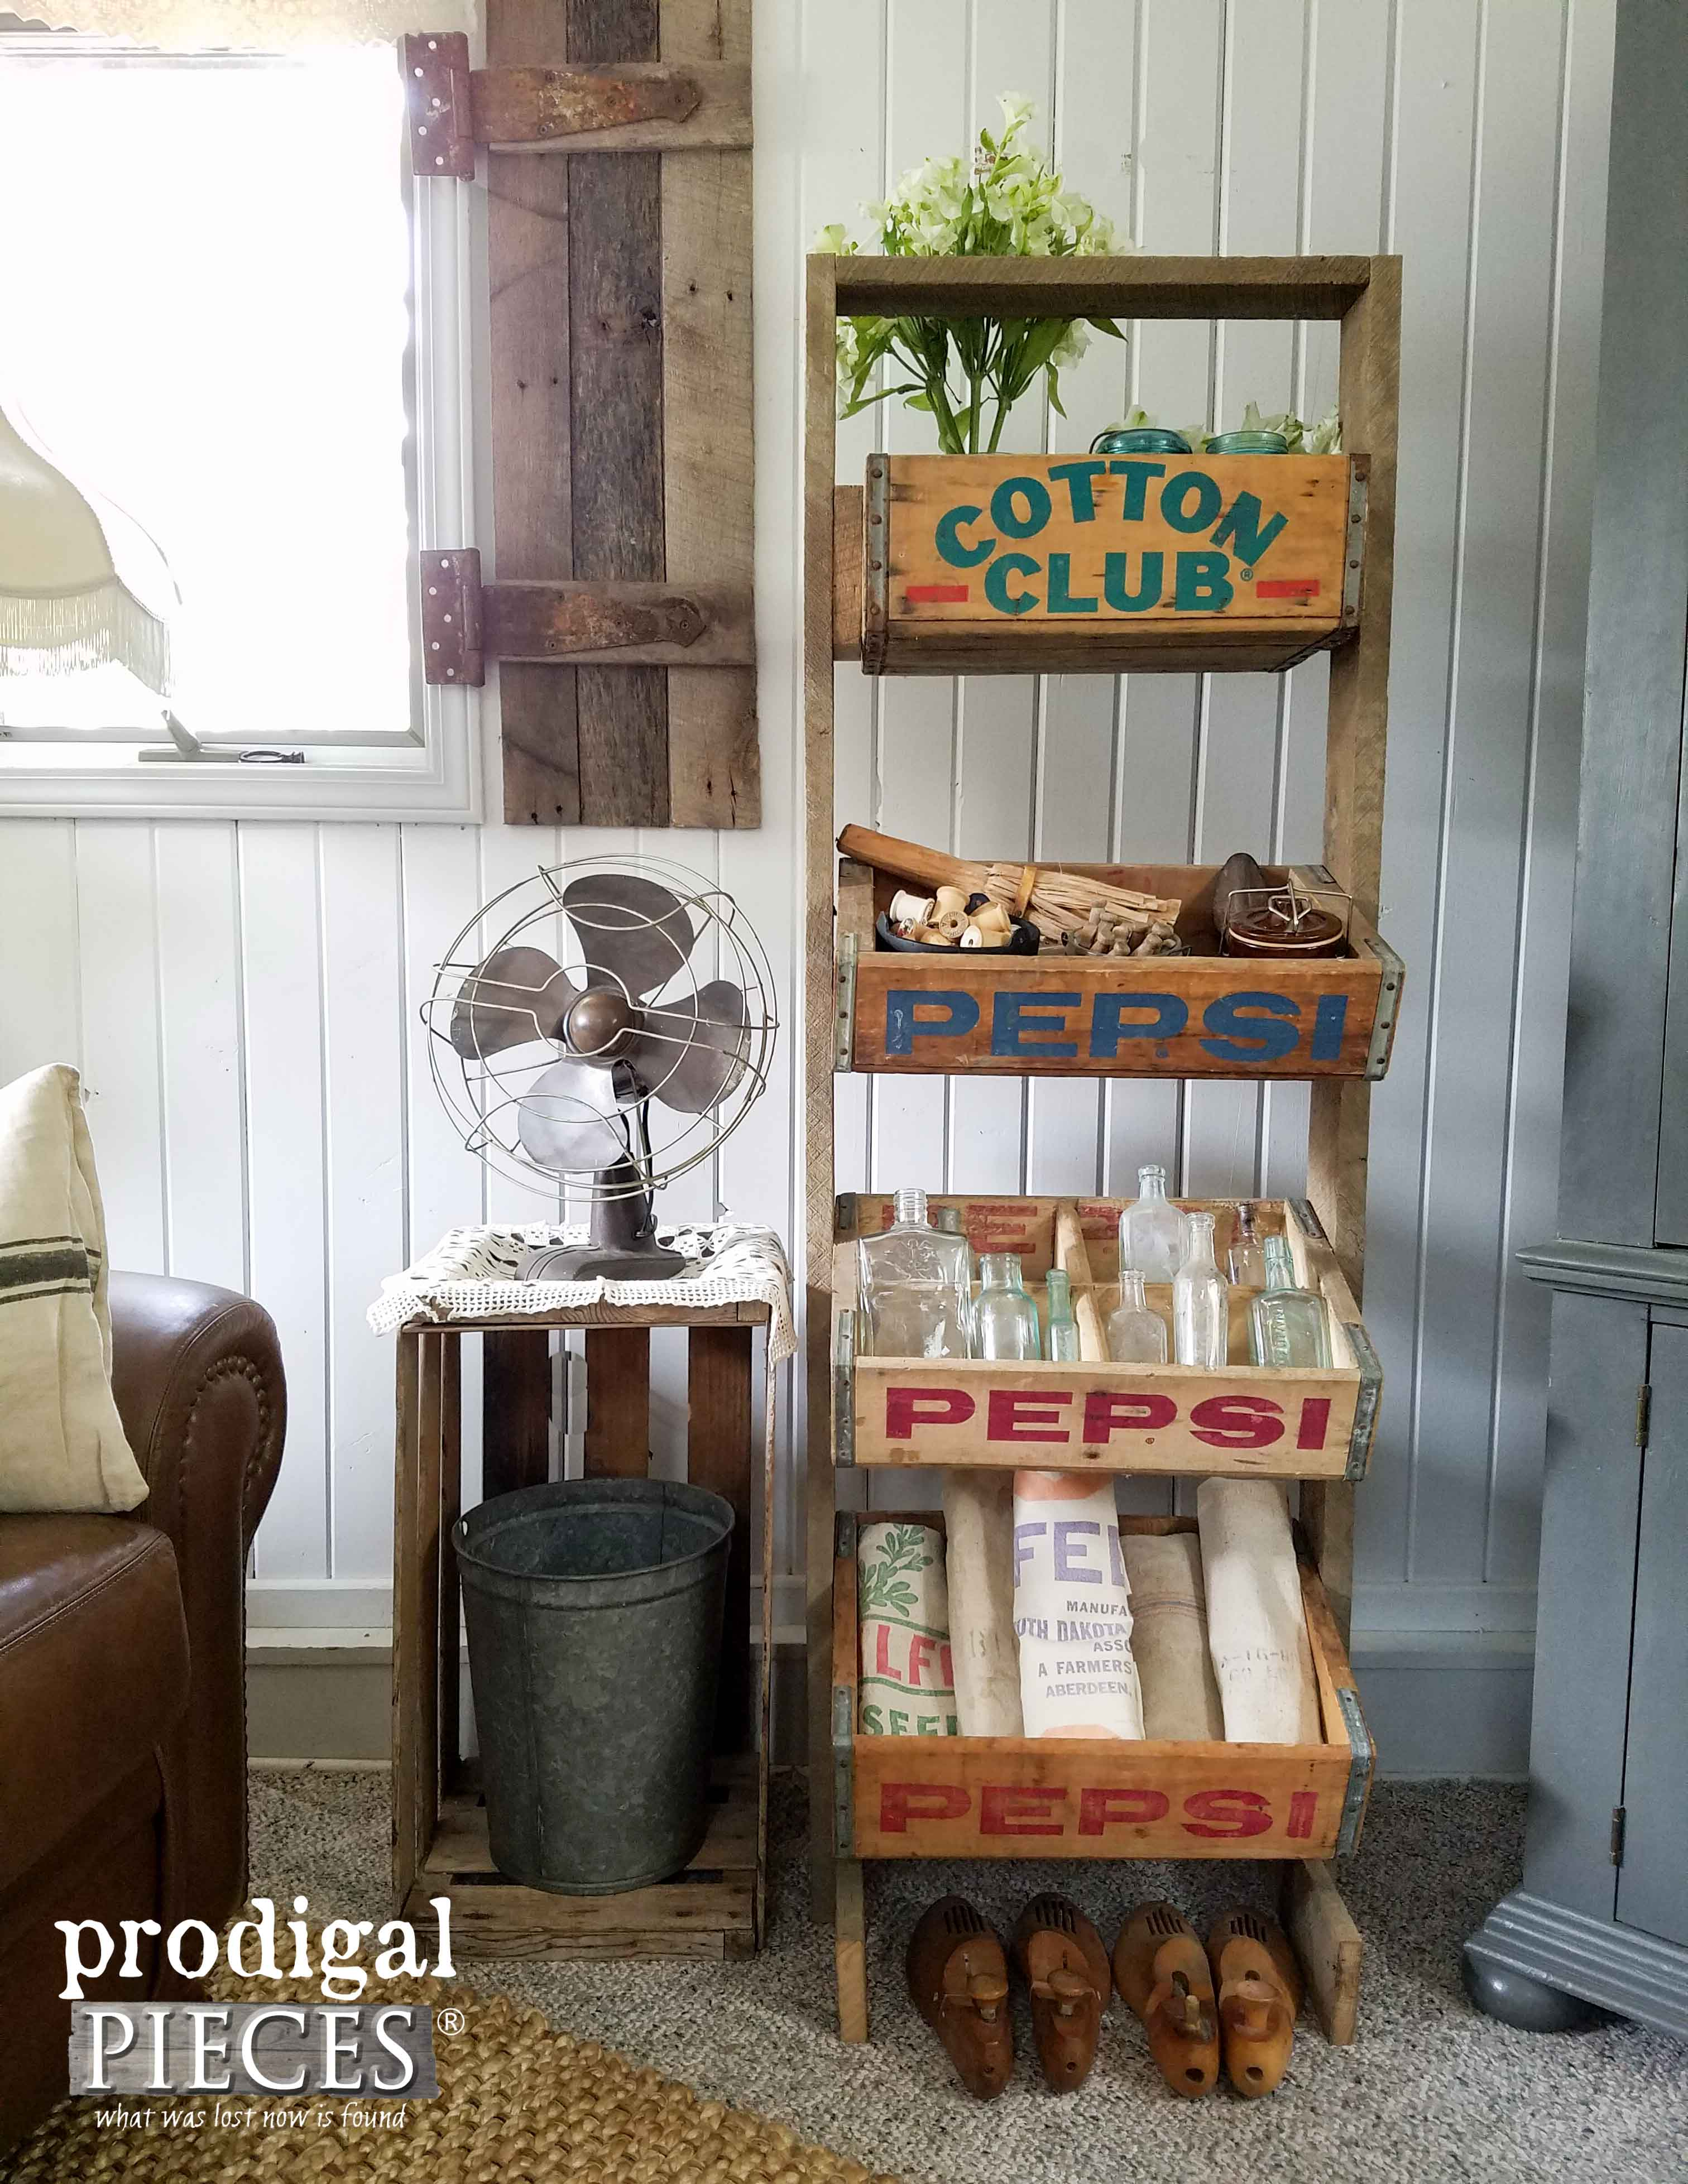 Reclaimed Vintage Soda Crate Stand by Prodigal Pieces | www.prodigalpieces.com